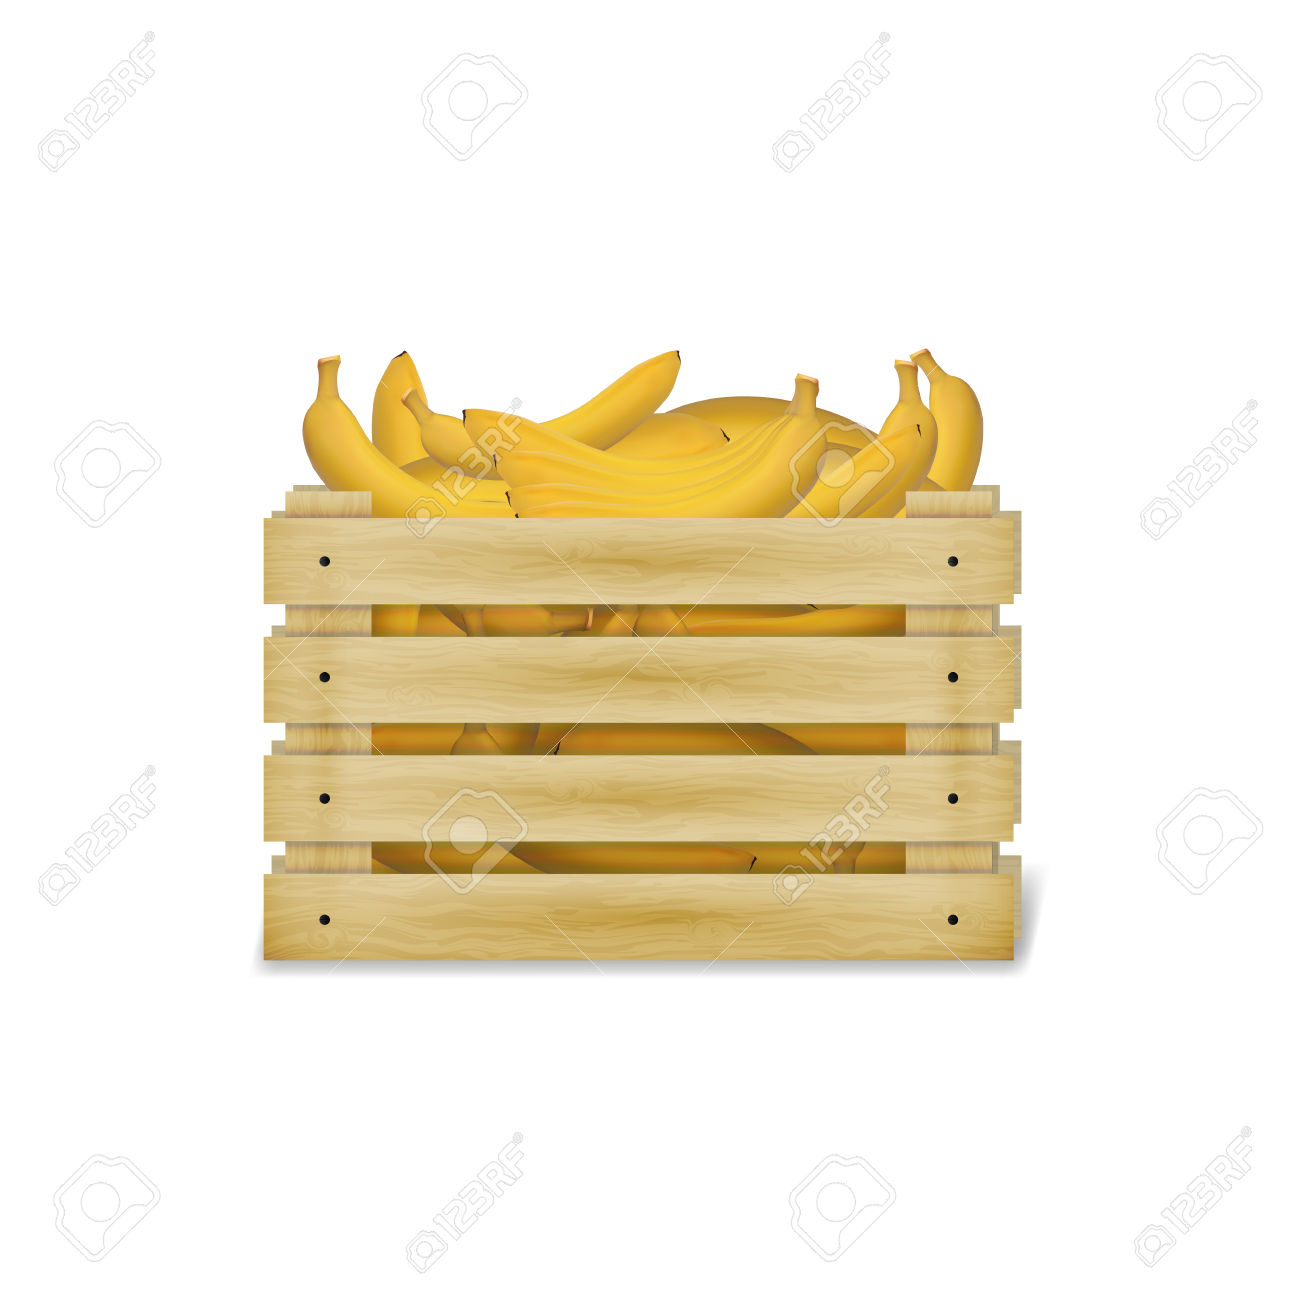 Illustration Of Wooden Box With Bananas. Wooden Food Crate.